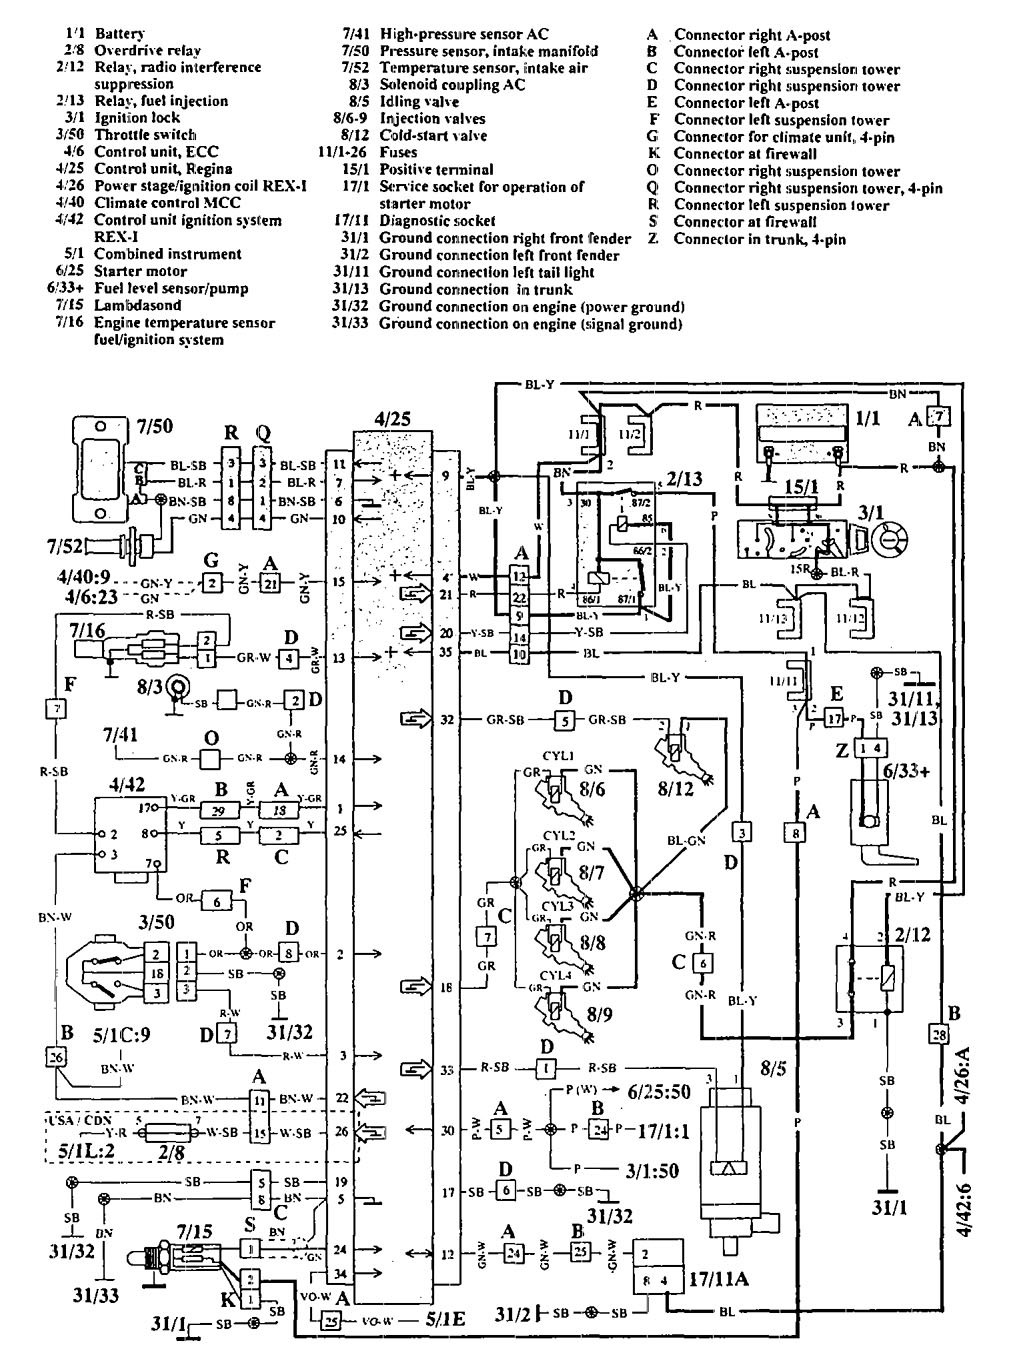 Volvo 960 Radio Wiring Diagram Schematic Diagrams 2004 Xc90 Abs Fuse Box 1994 Stereo Trusted Schematics 940 Custom